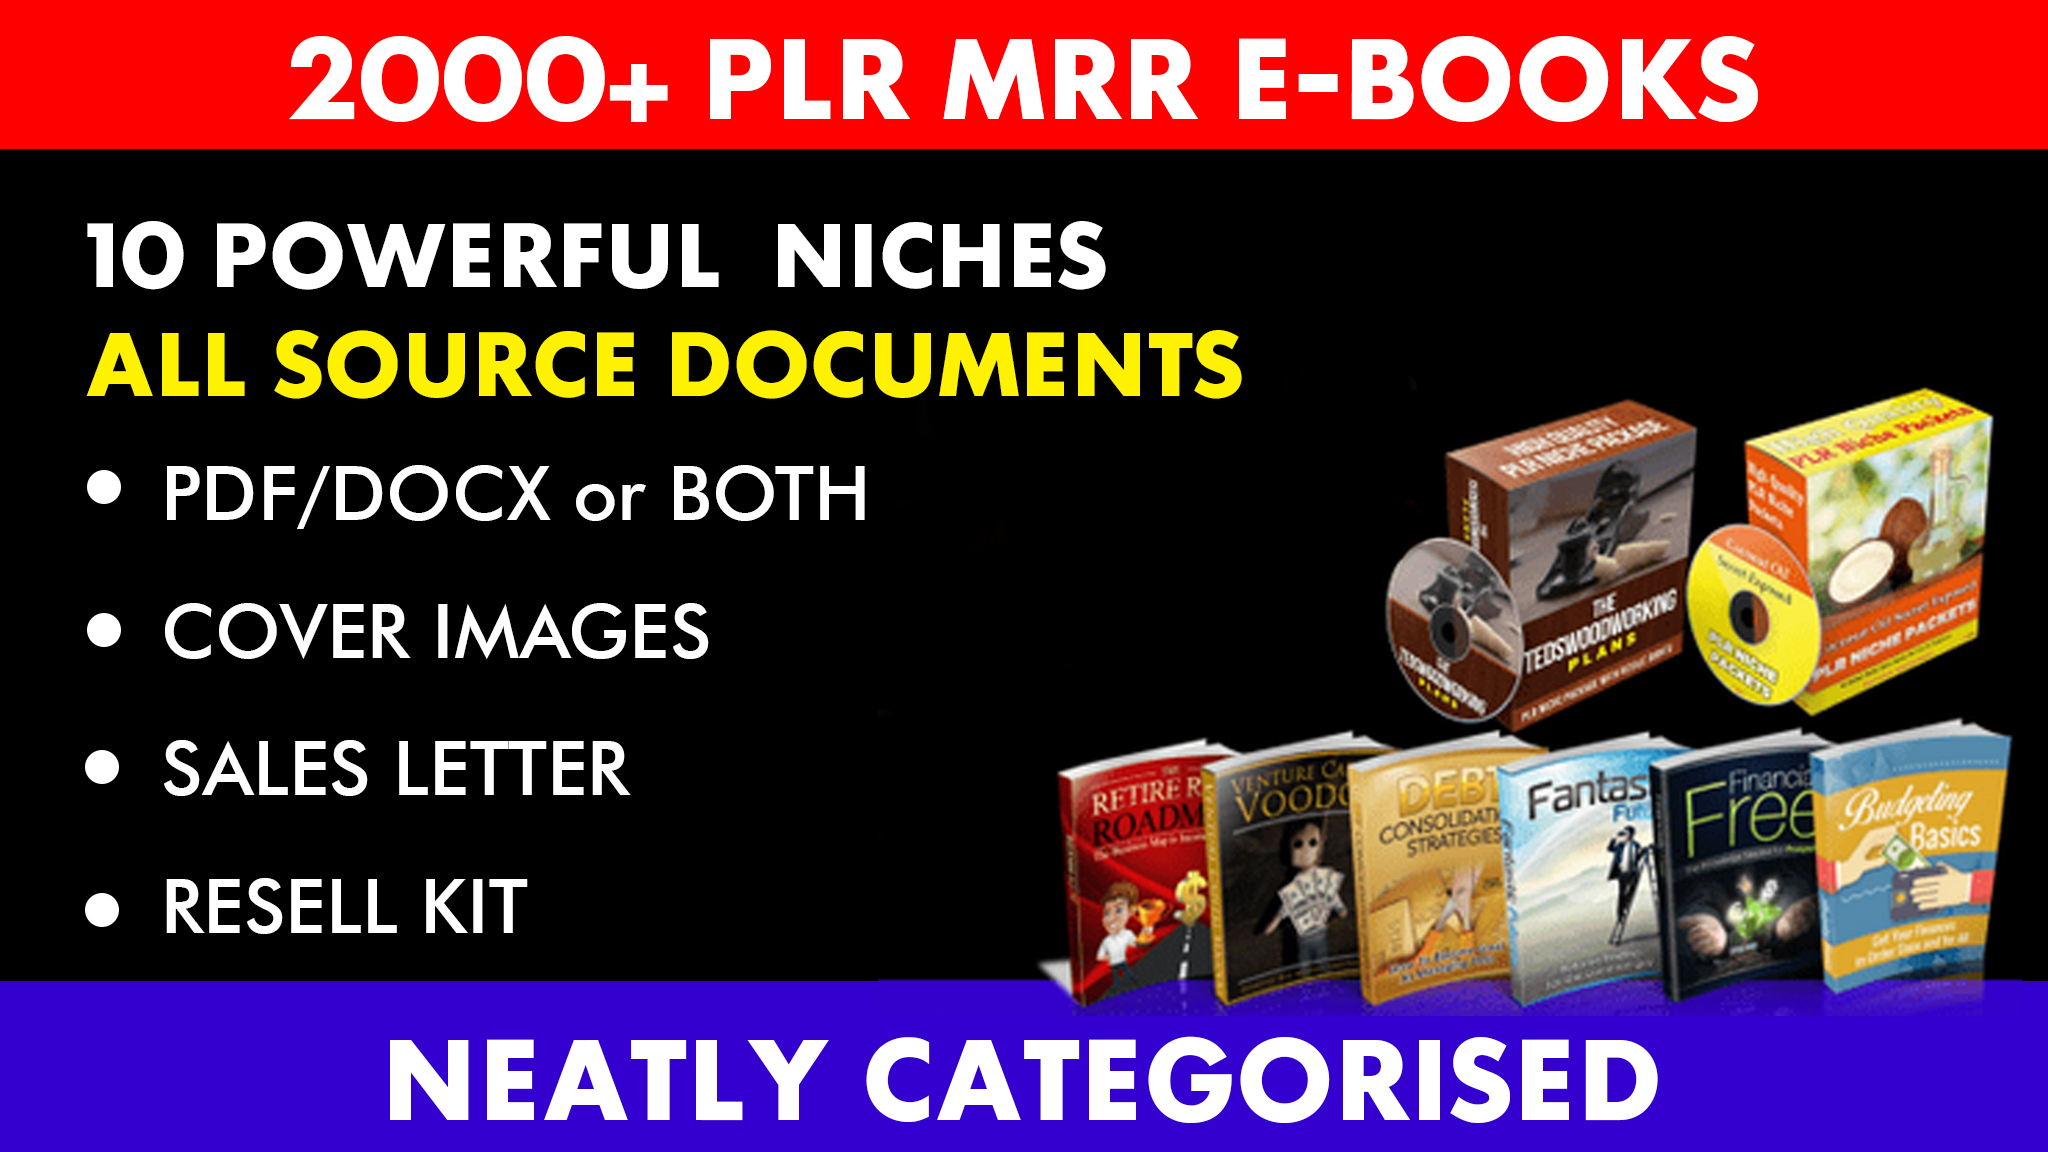 give 2000 rebrandable ebooks articles mrr plr